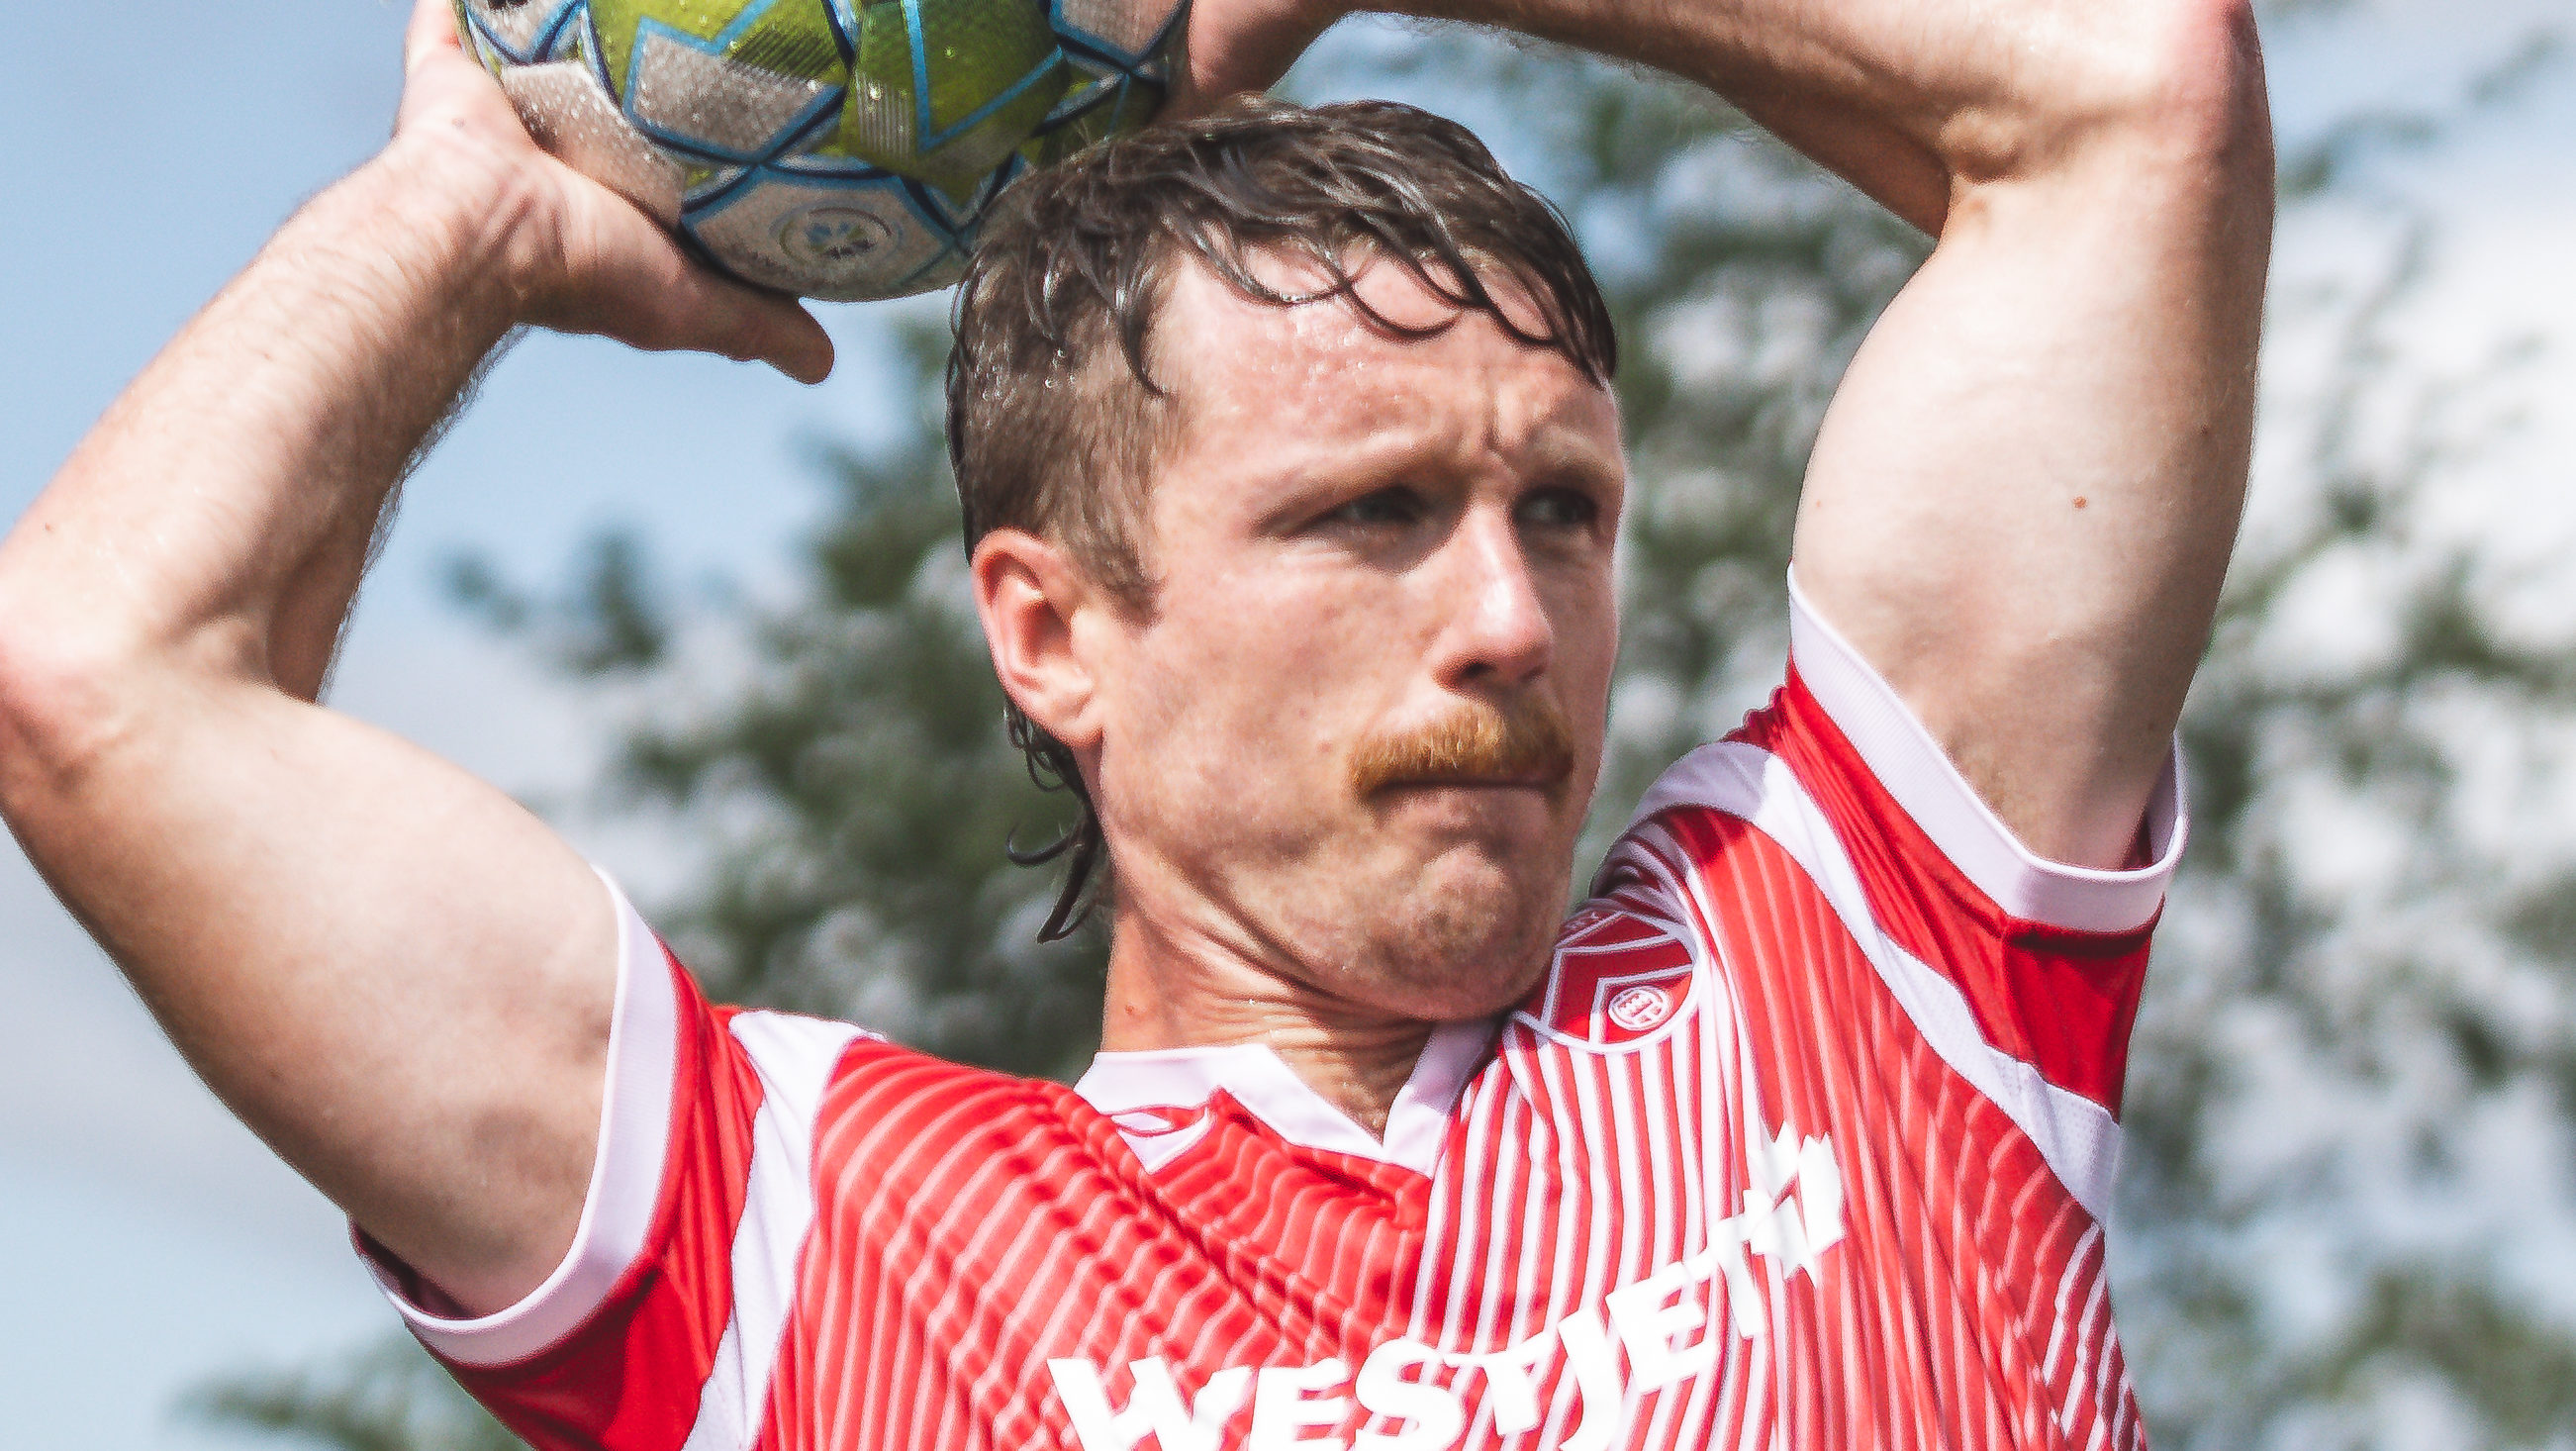 Dean Northover showed up to The Island Games with a killer mullet-mustache combo. (Photo: CPL/Chant Photography)